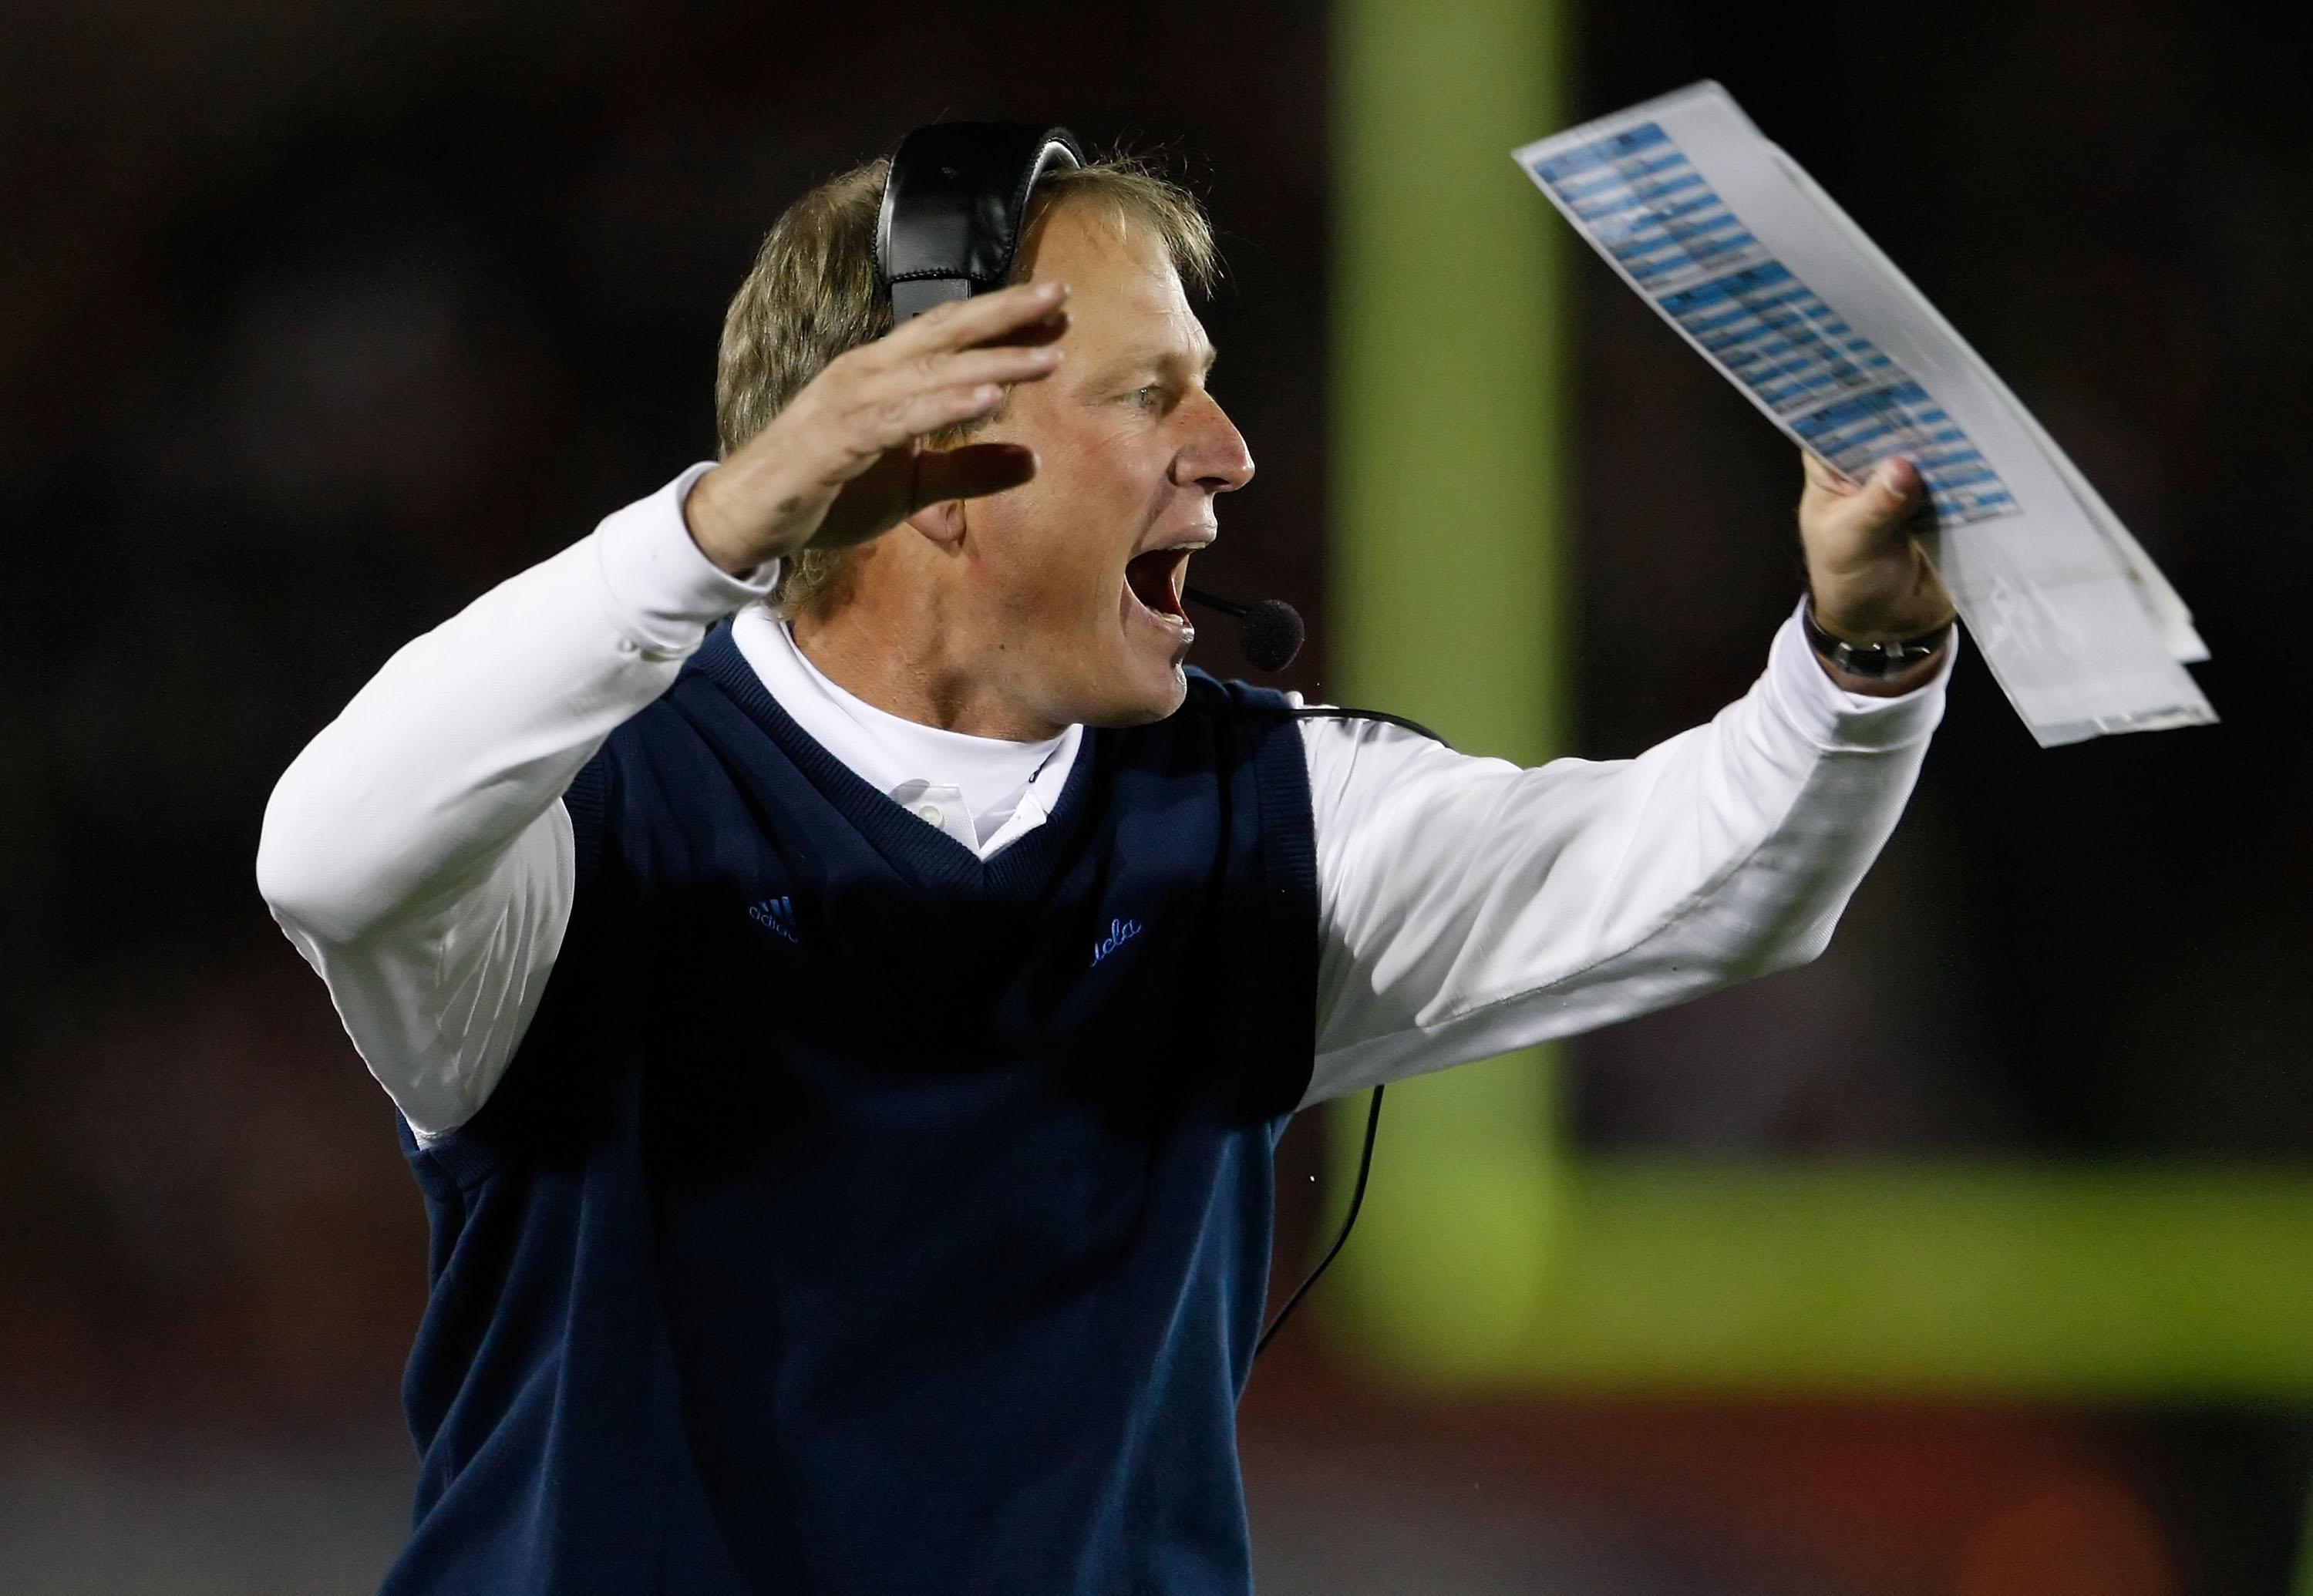 LOS ANGELES, CA - NOVEMBER 28:  UCLA Bruins head coach Rick Neuheisel reacts to a call in the second half against the USC Trojans at the Los Angeles Memorial Coliseum on November 28, 2009 in Los Angeles, California. USC defeated UCLA 28-7.  (Photo by Jeff